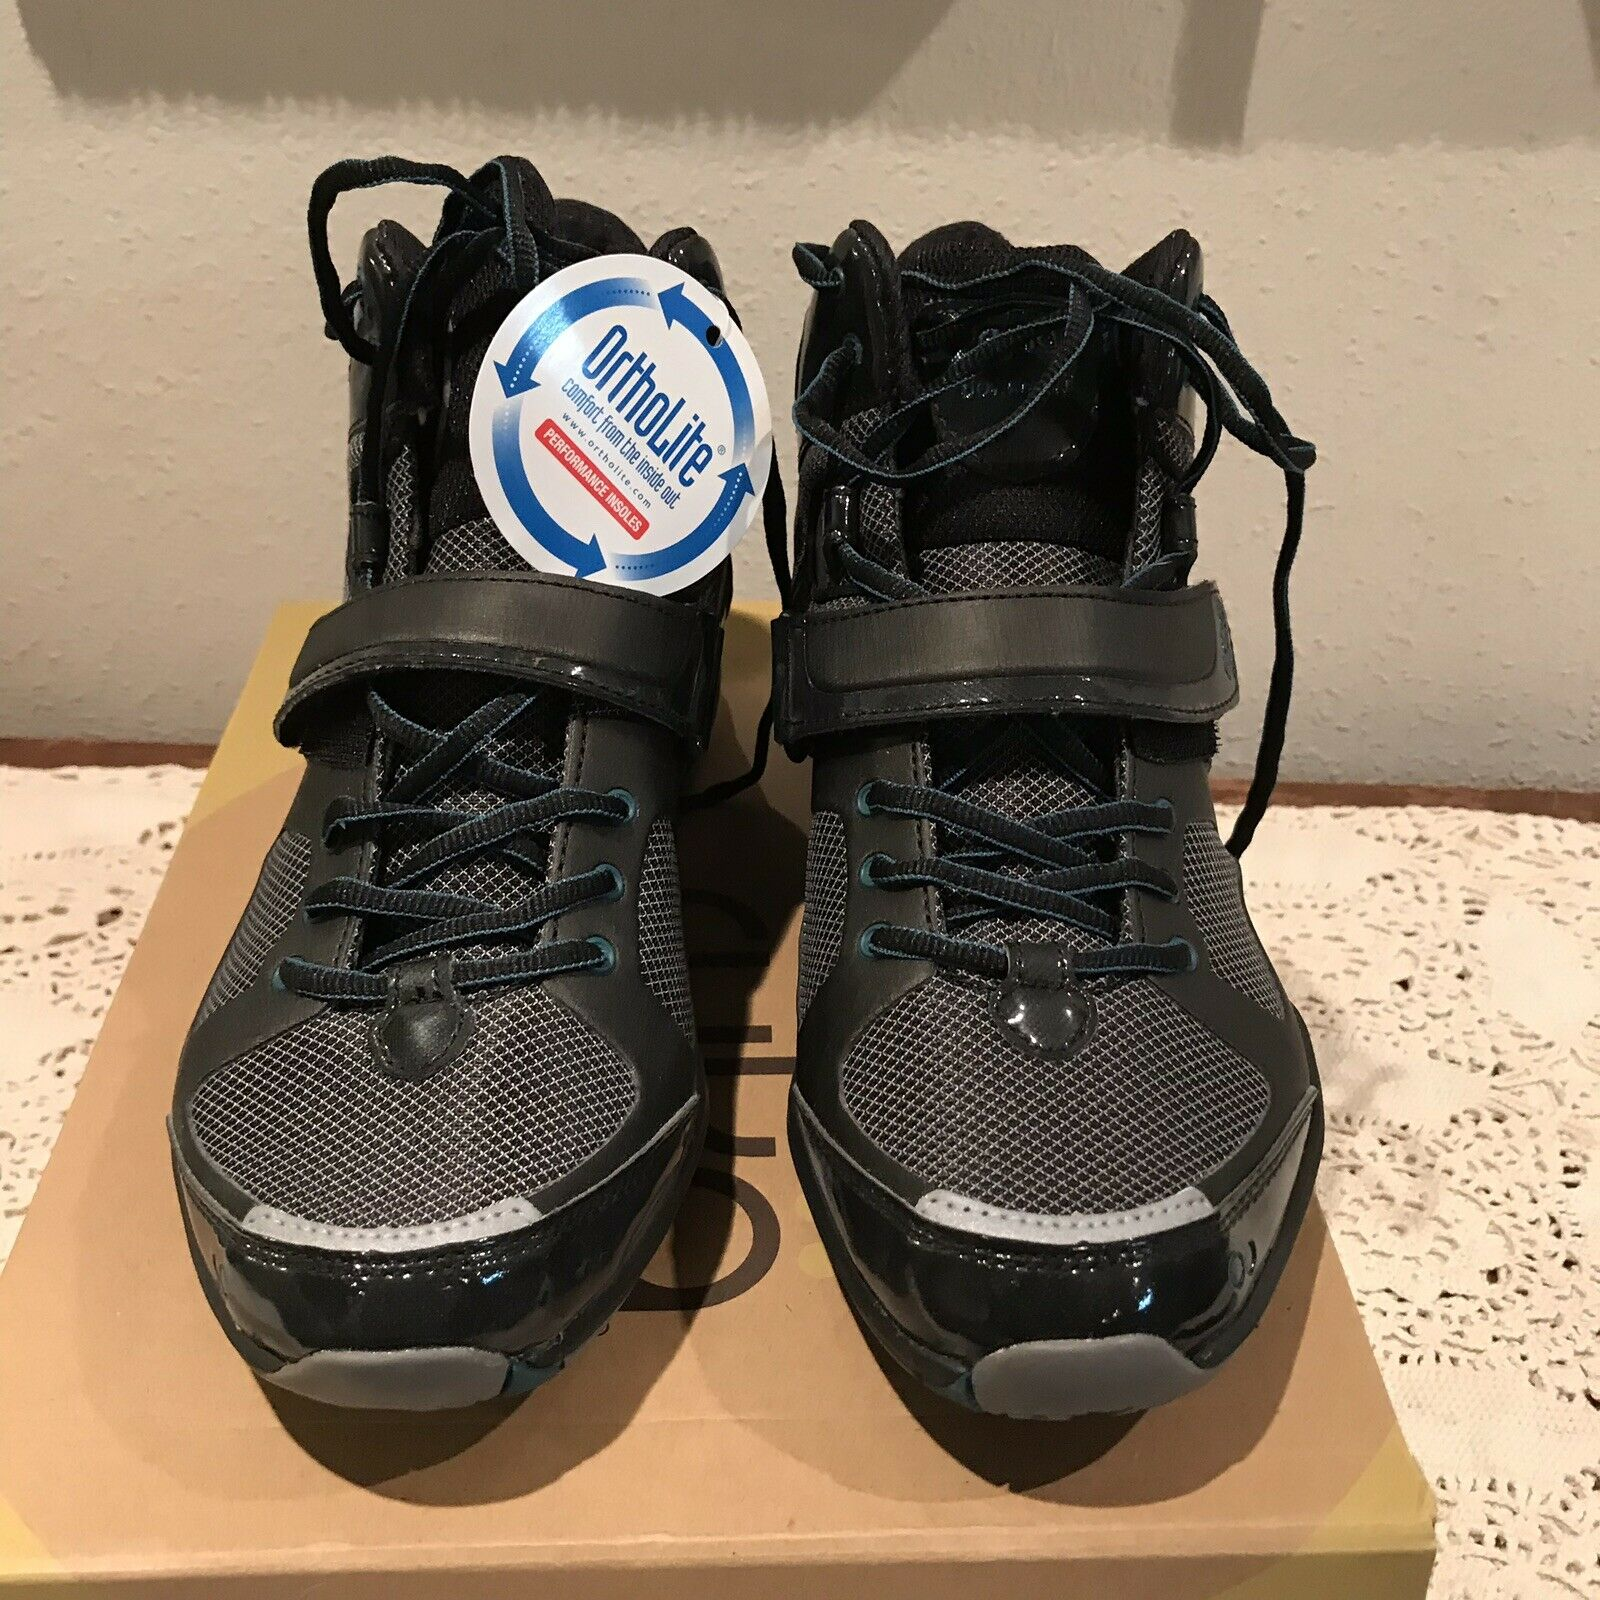 Ryka Downbeat Ortholite Mid Athletic Athletic Athletic shoes Black Teal Womens Size 9 New 95dd6a